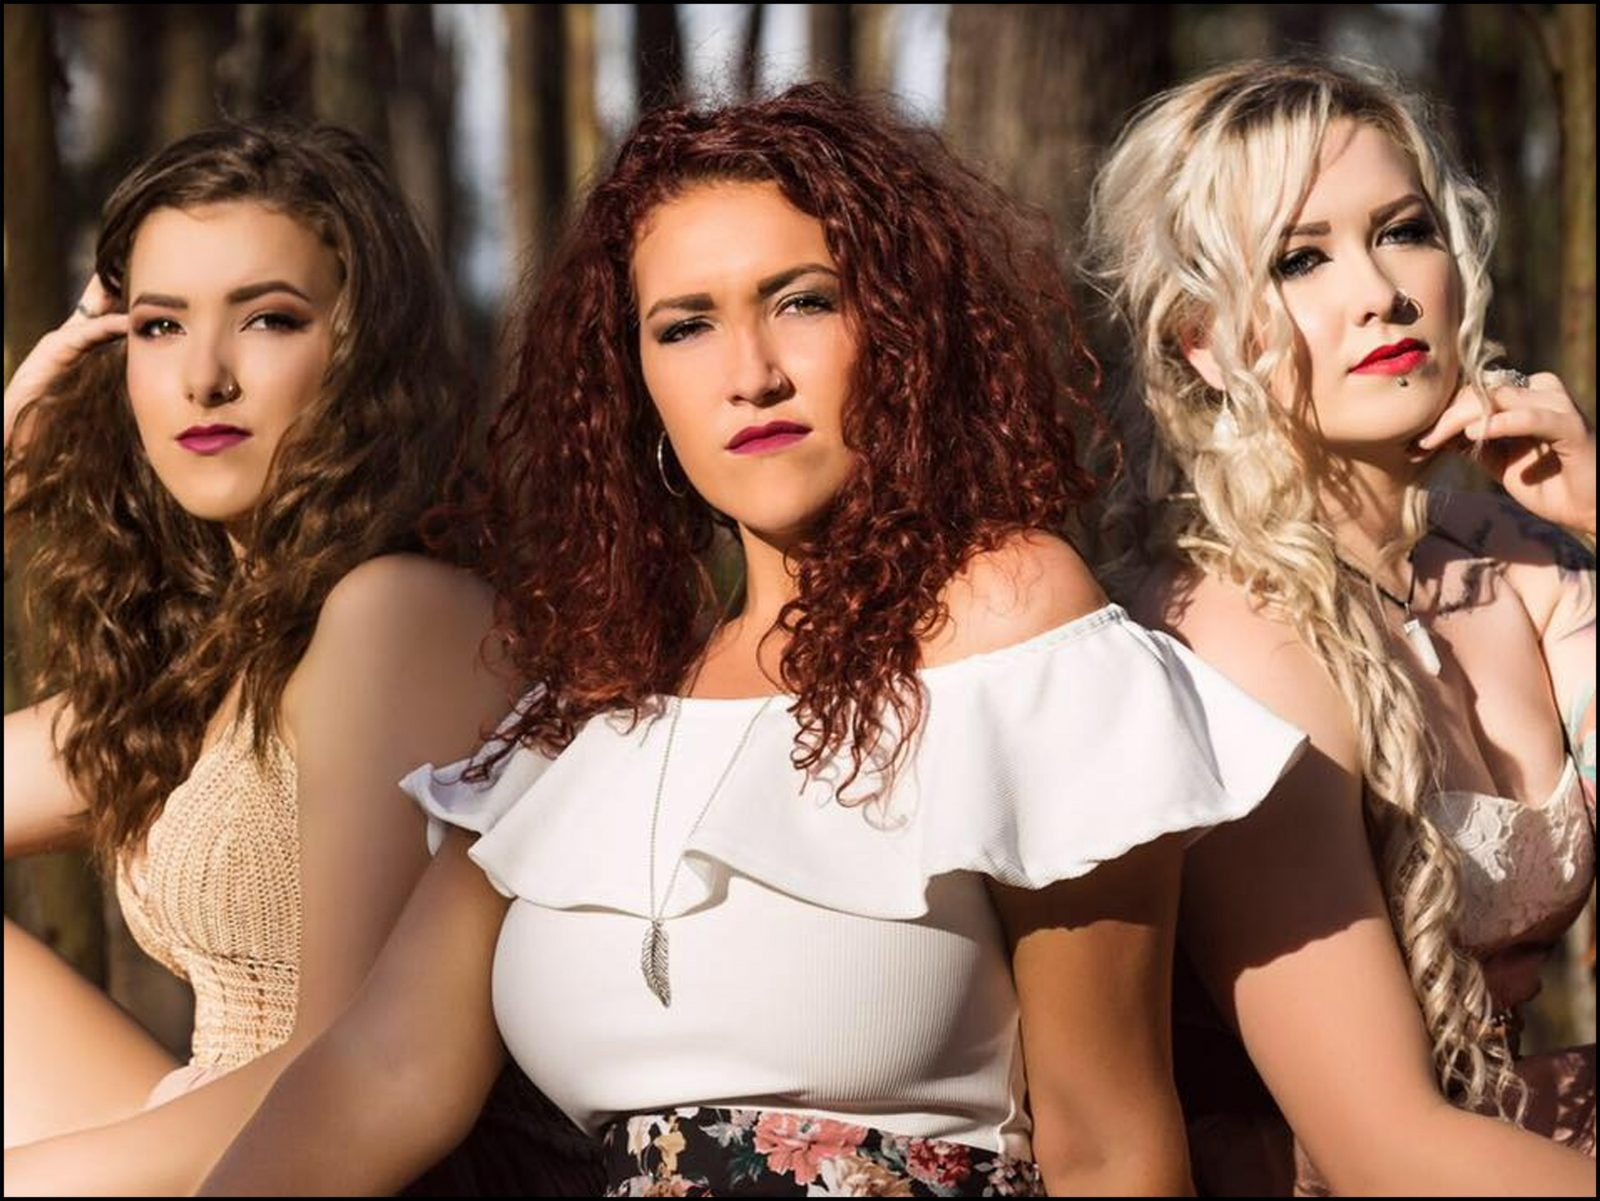 Live Entertainment The Waves Sports Club Vixens of Fall